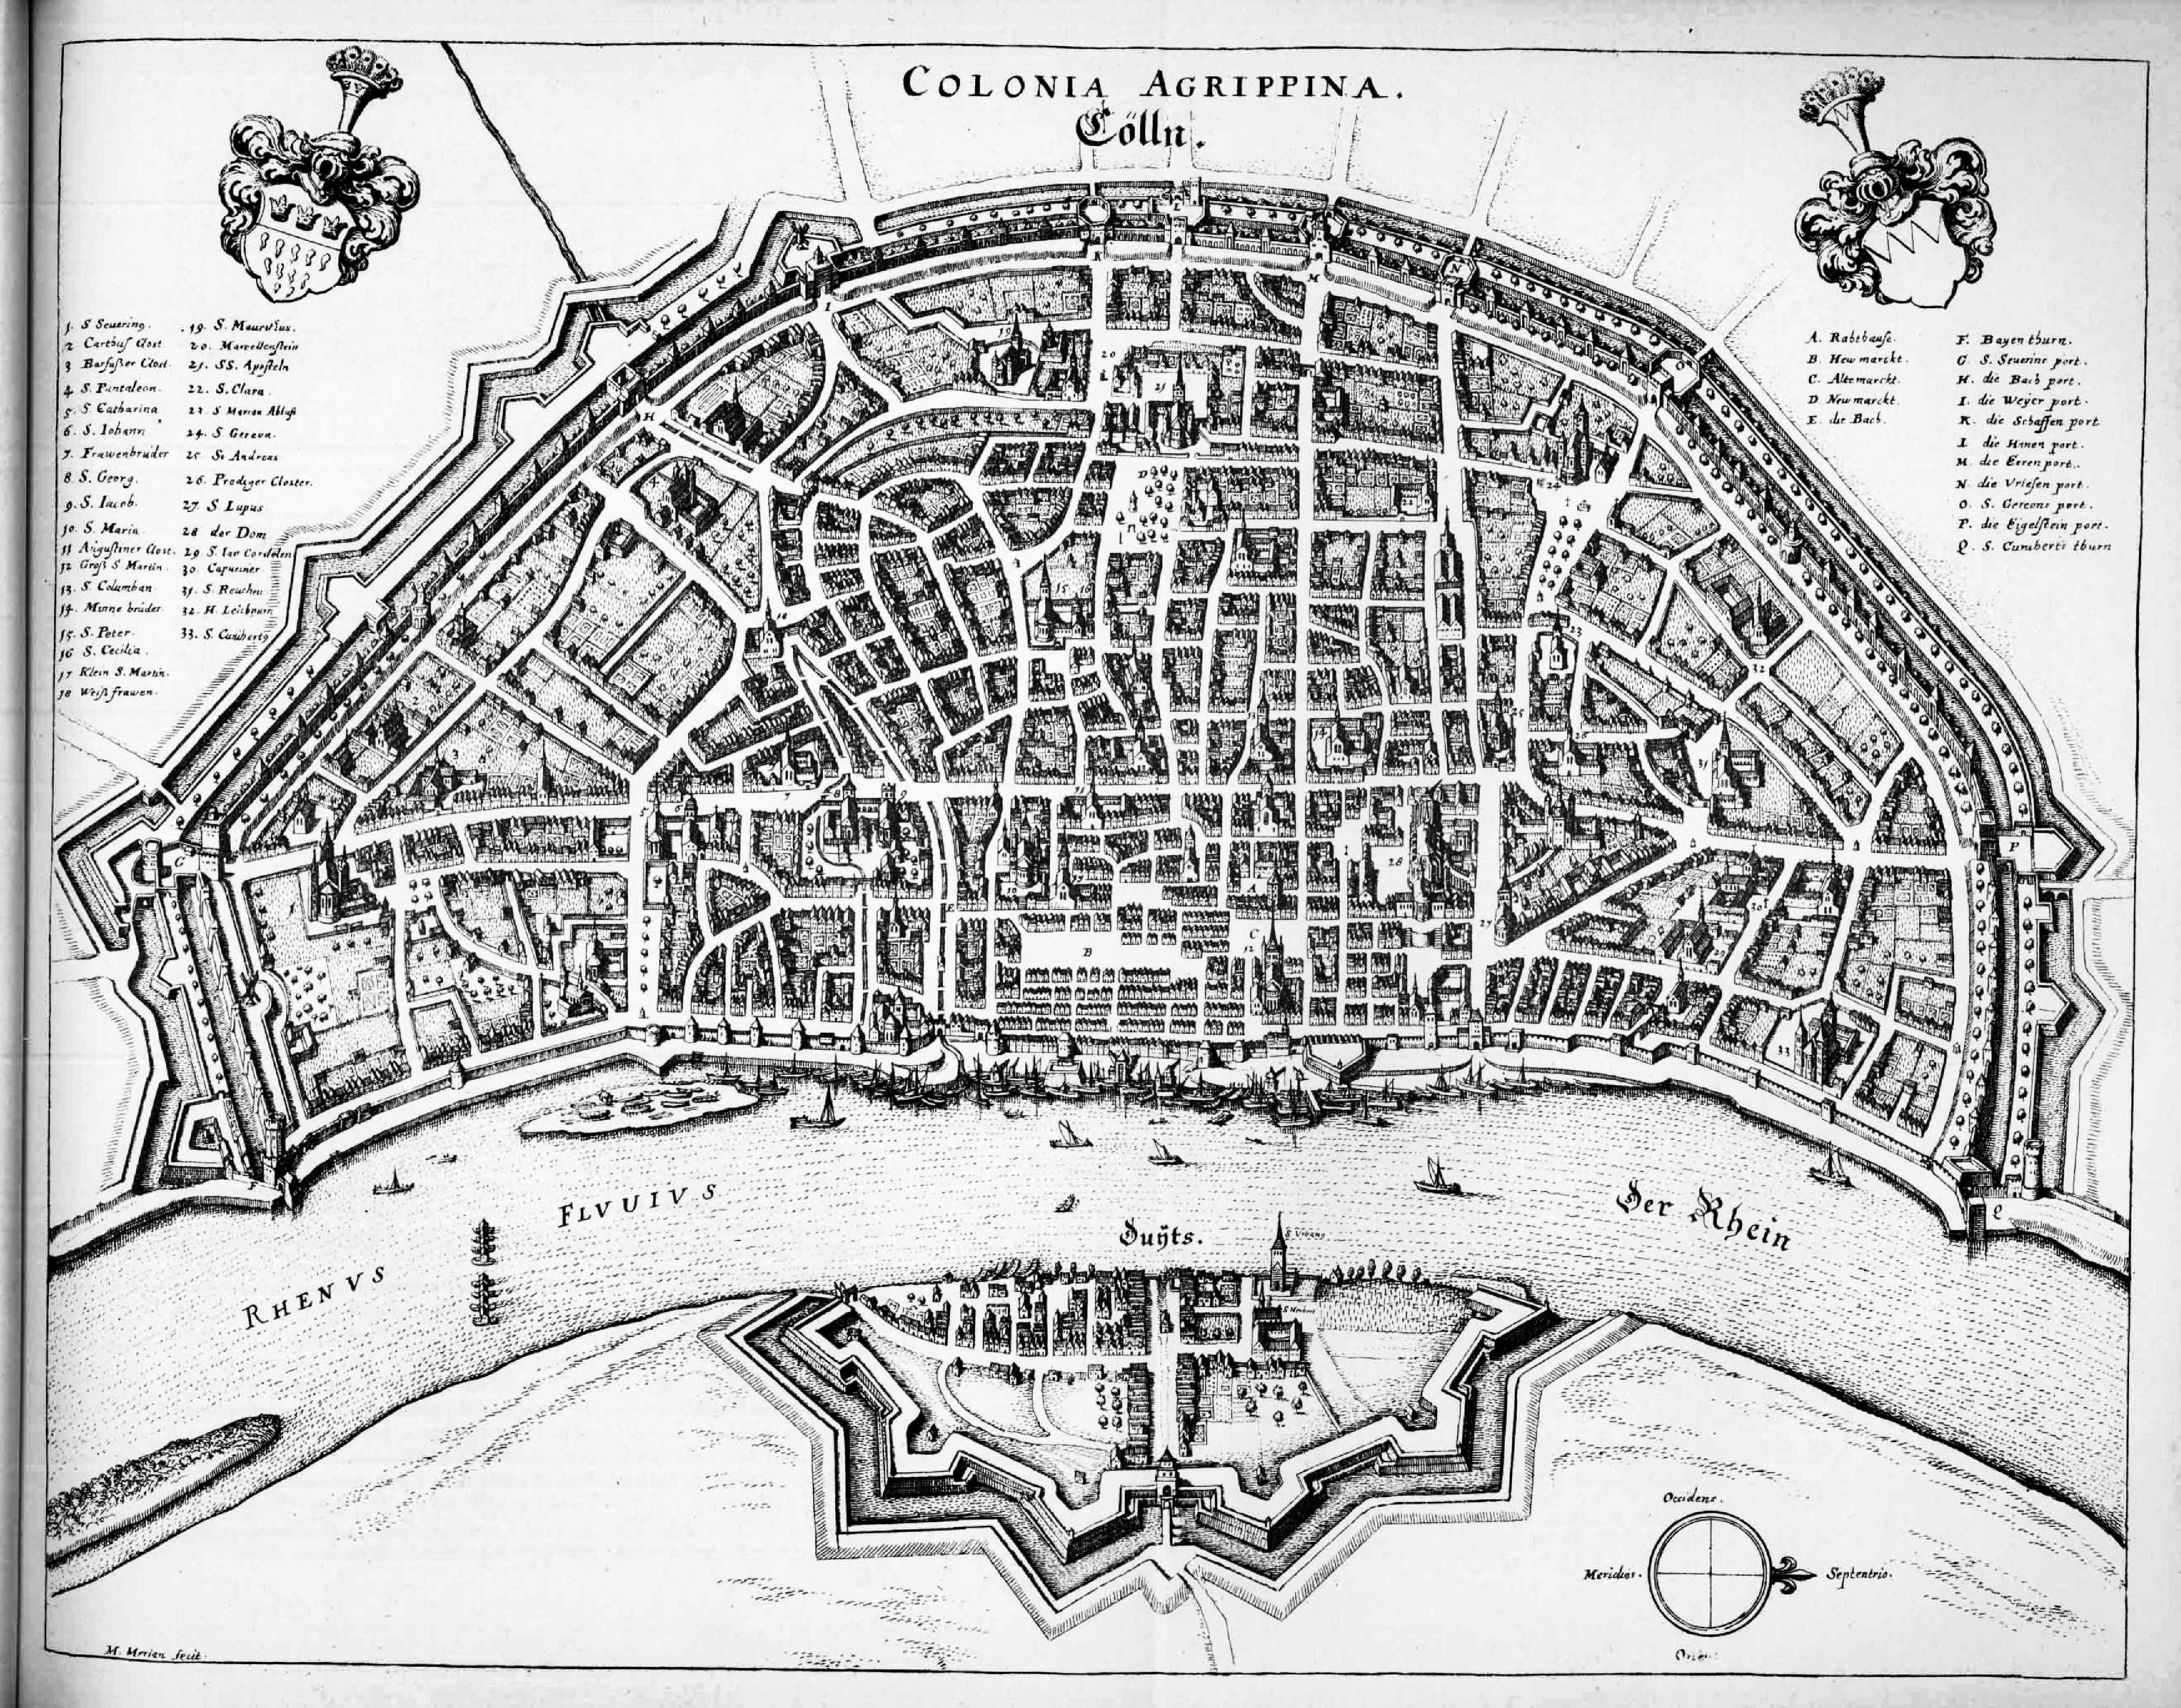 Cologne, Germany, mid 17th century | MAPS | Pinterest | 17th century